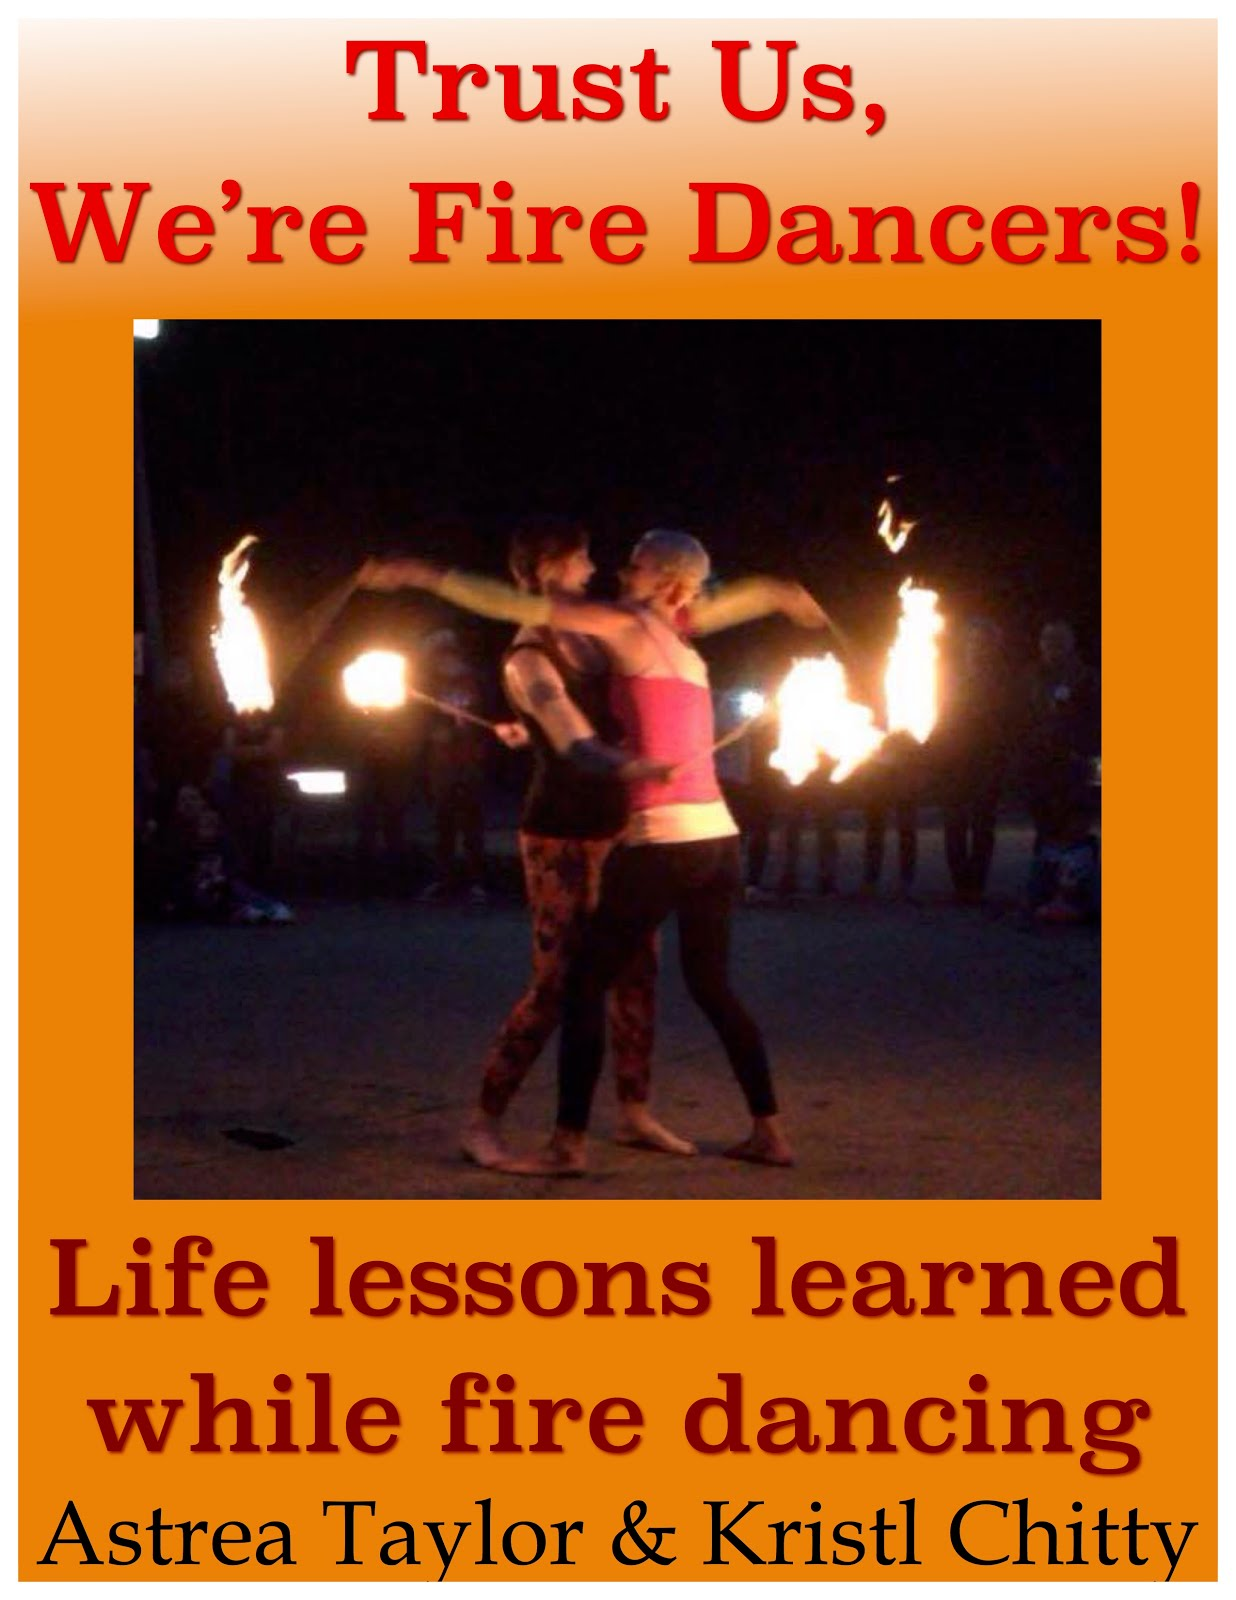 astrea taylor's strange stories: Trust Us, We're Fire Dancers: my